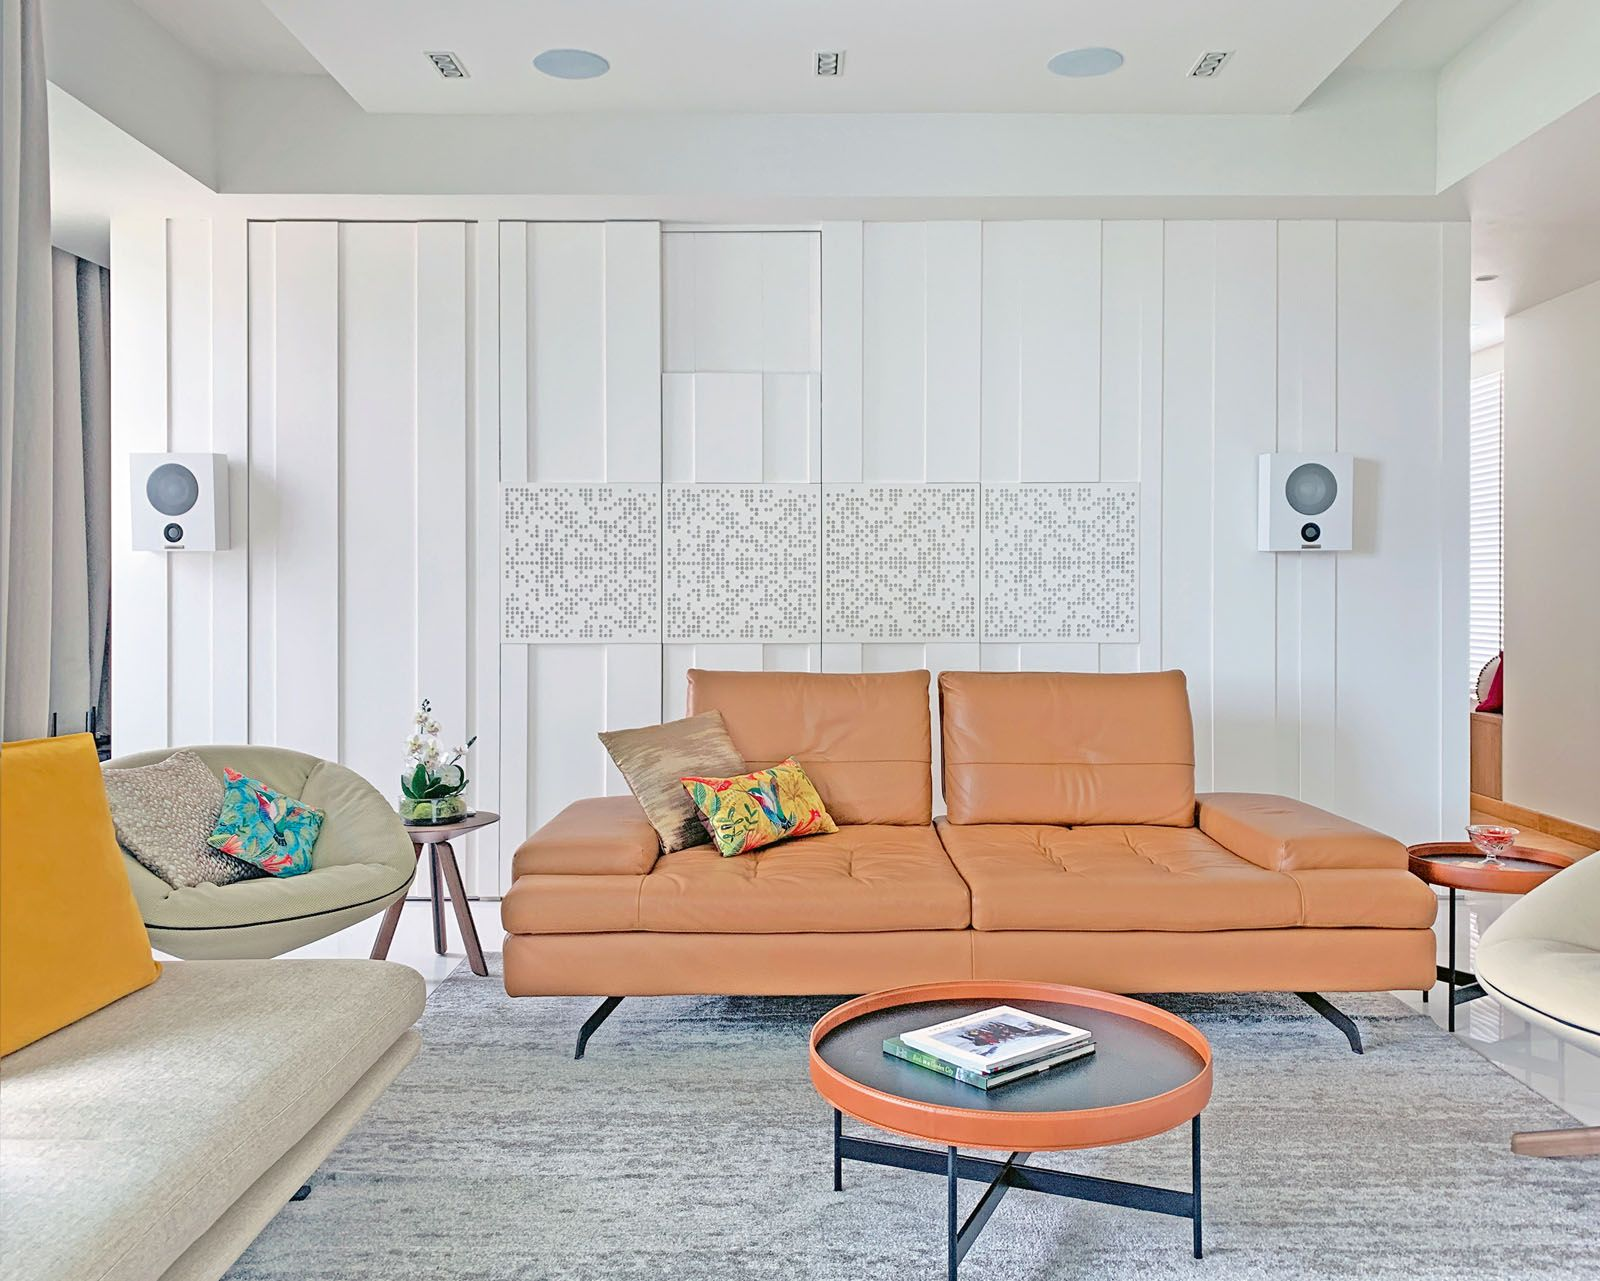 Image by Architology Interiors